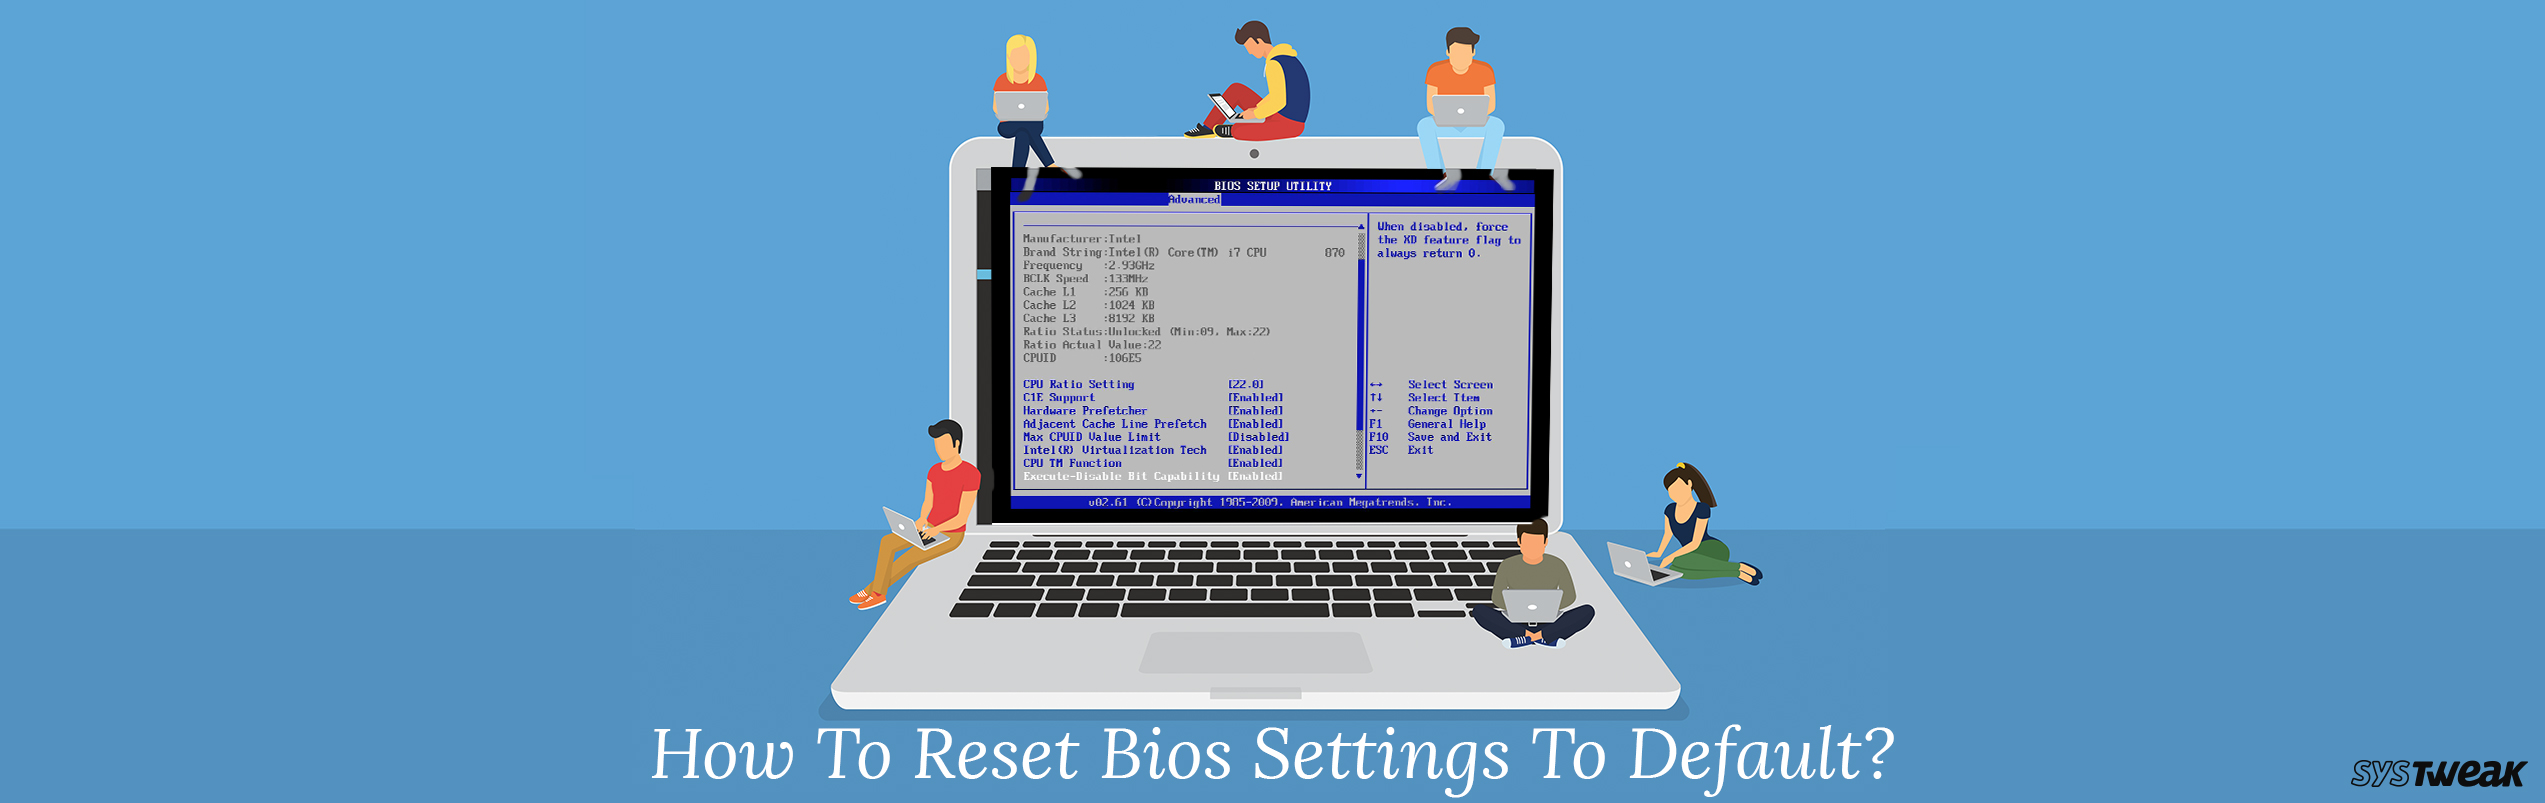 How To Reset Bios Settings